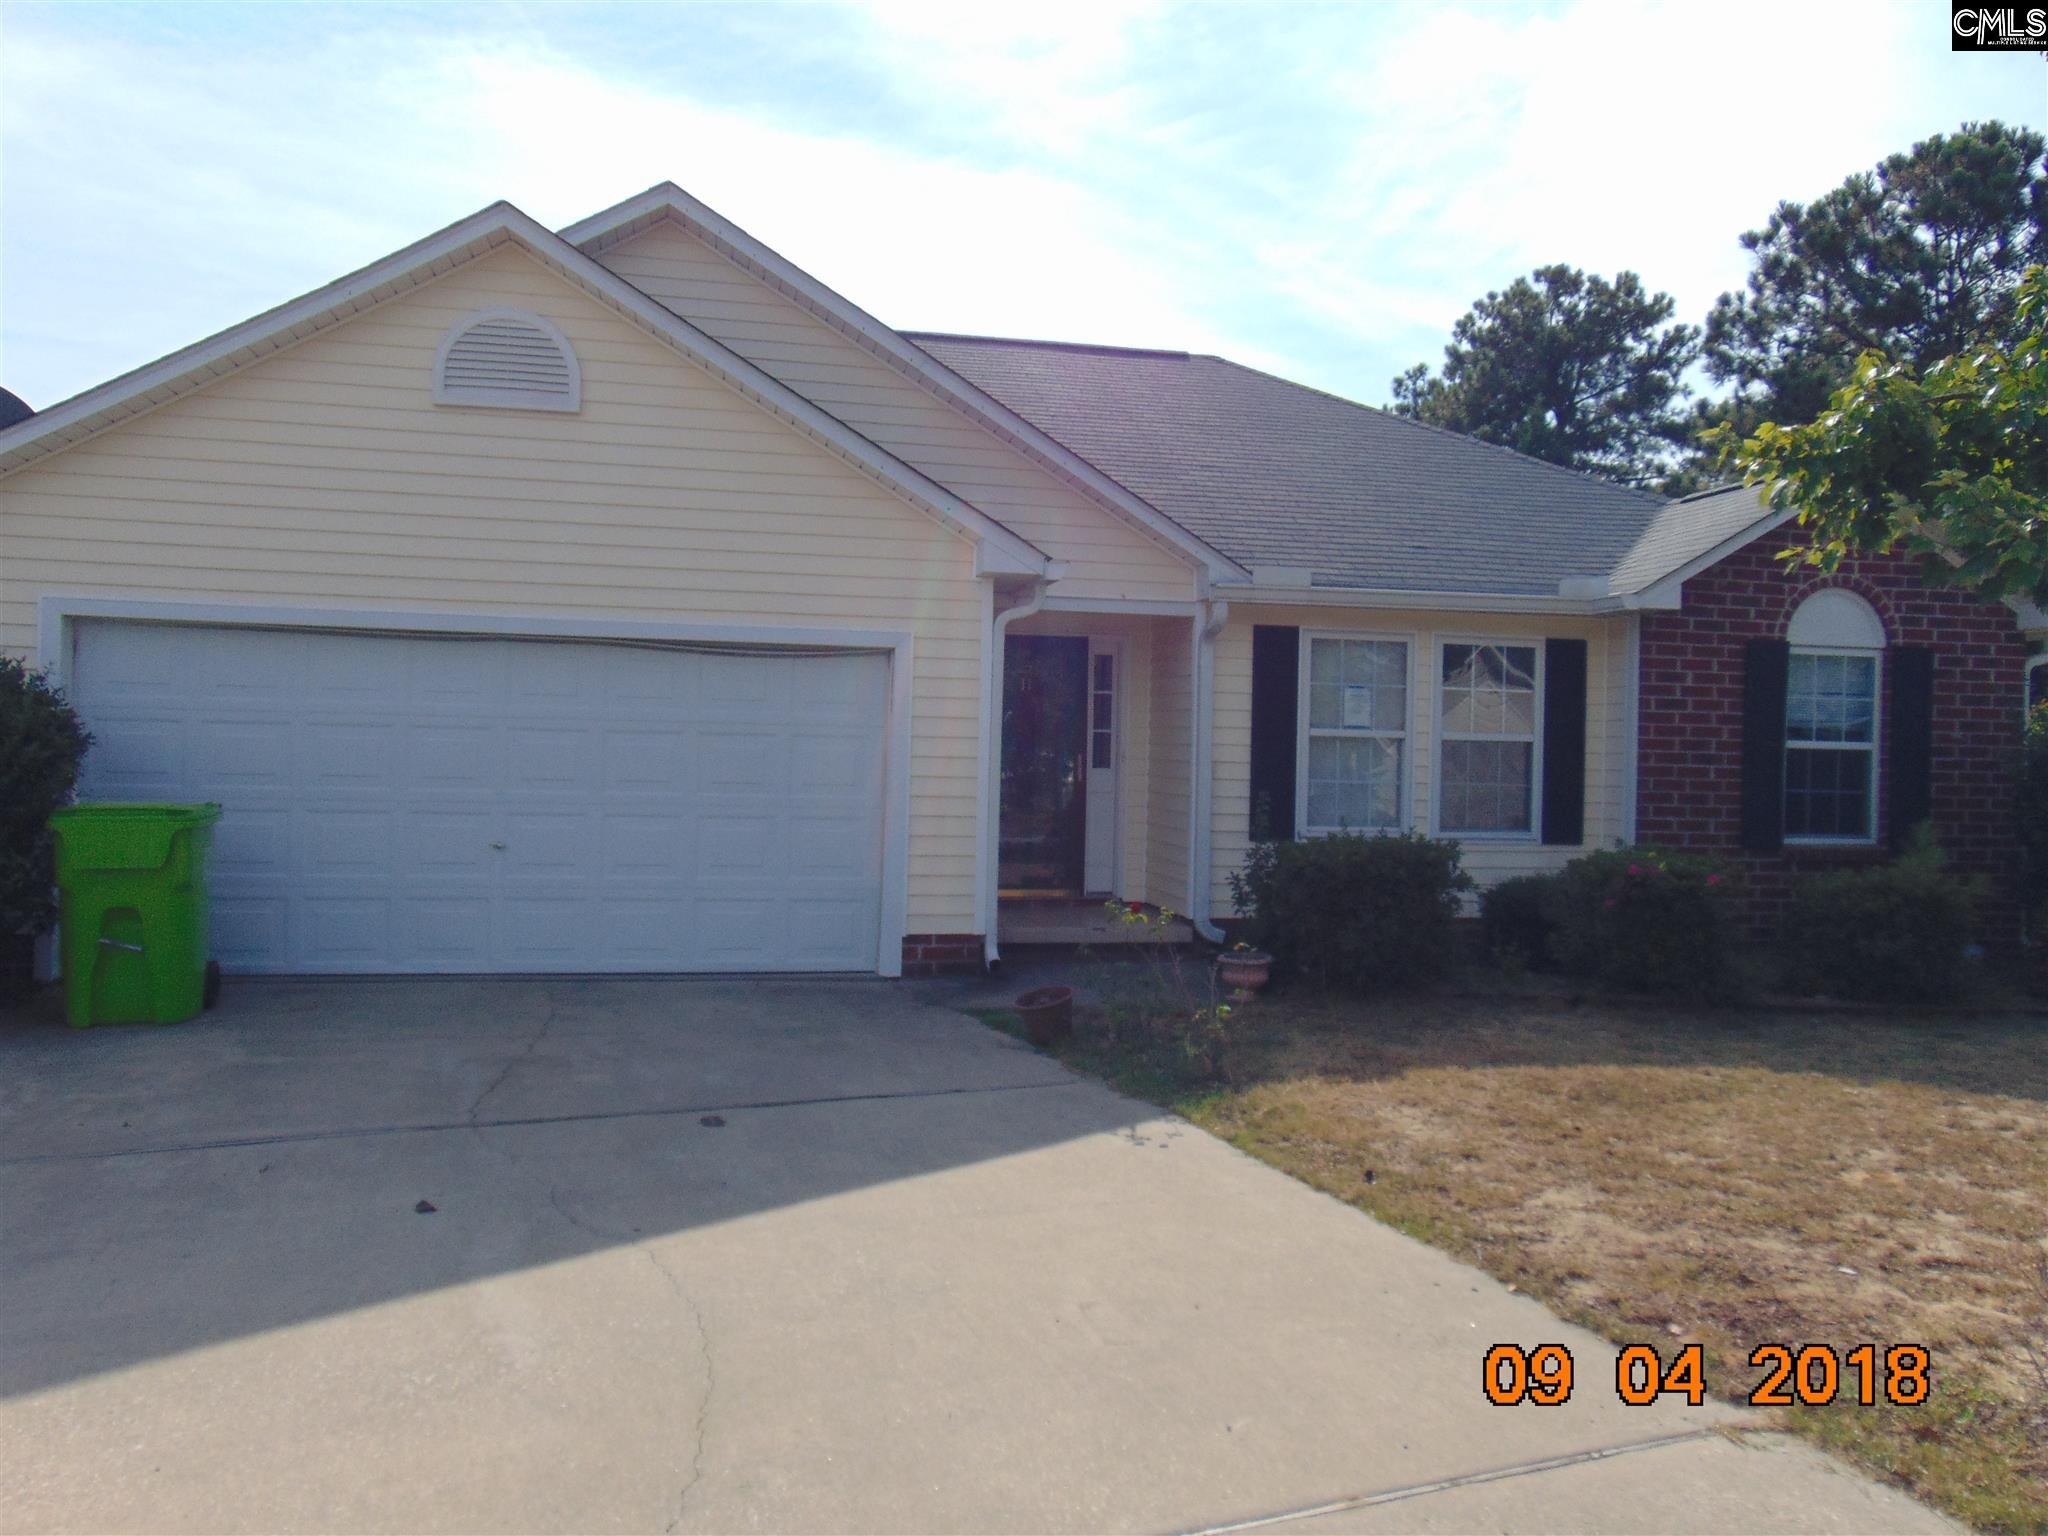 11 Natchez Columbia, SC 29229